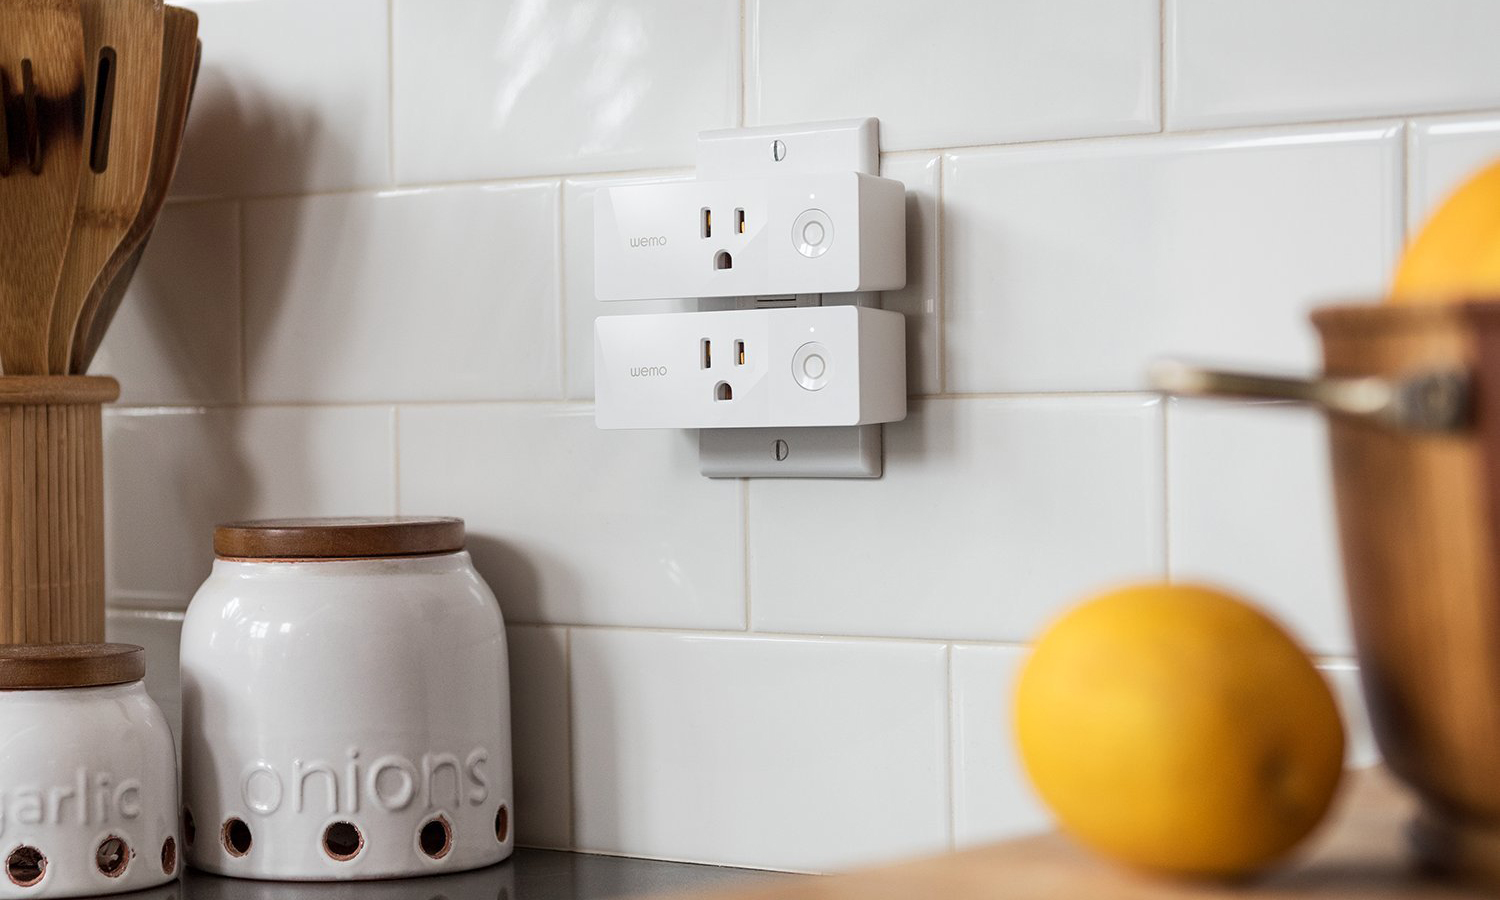 Belkin WeMo Mini Review: A Slim and Capable Smart Plug